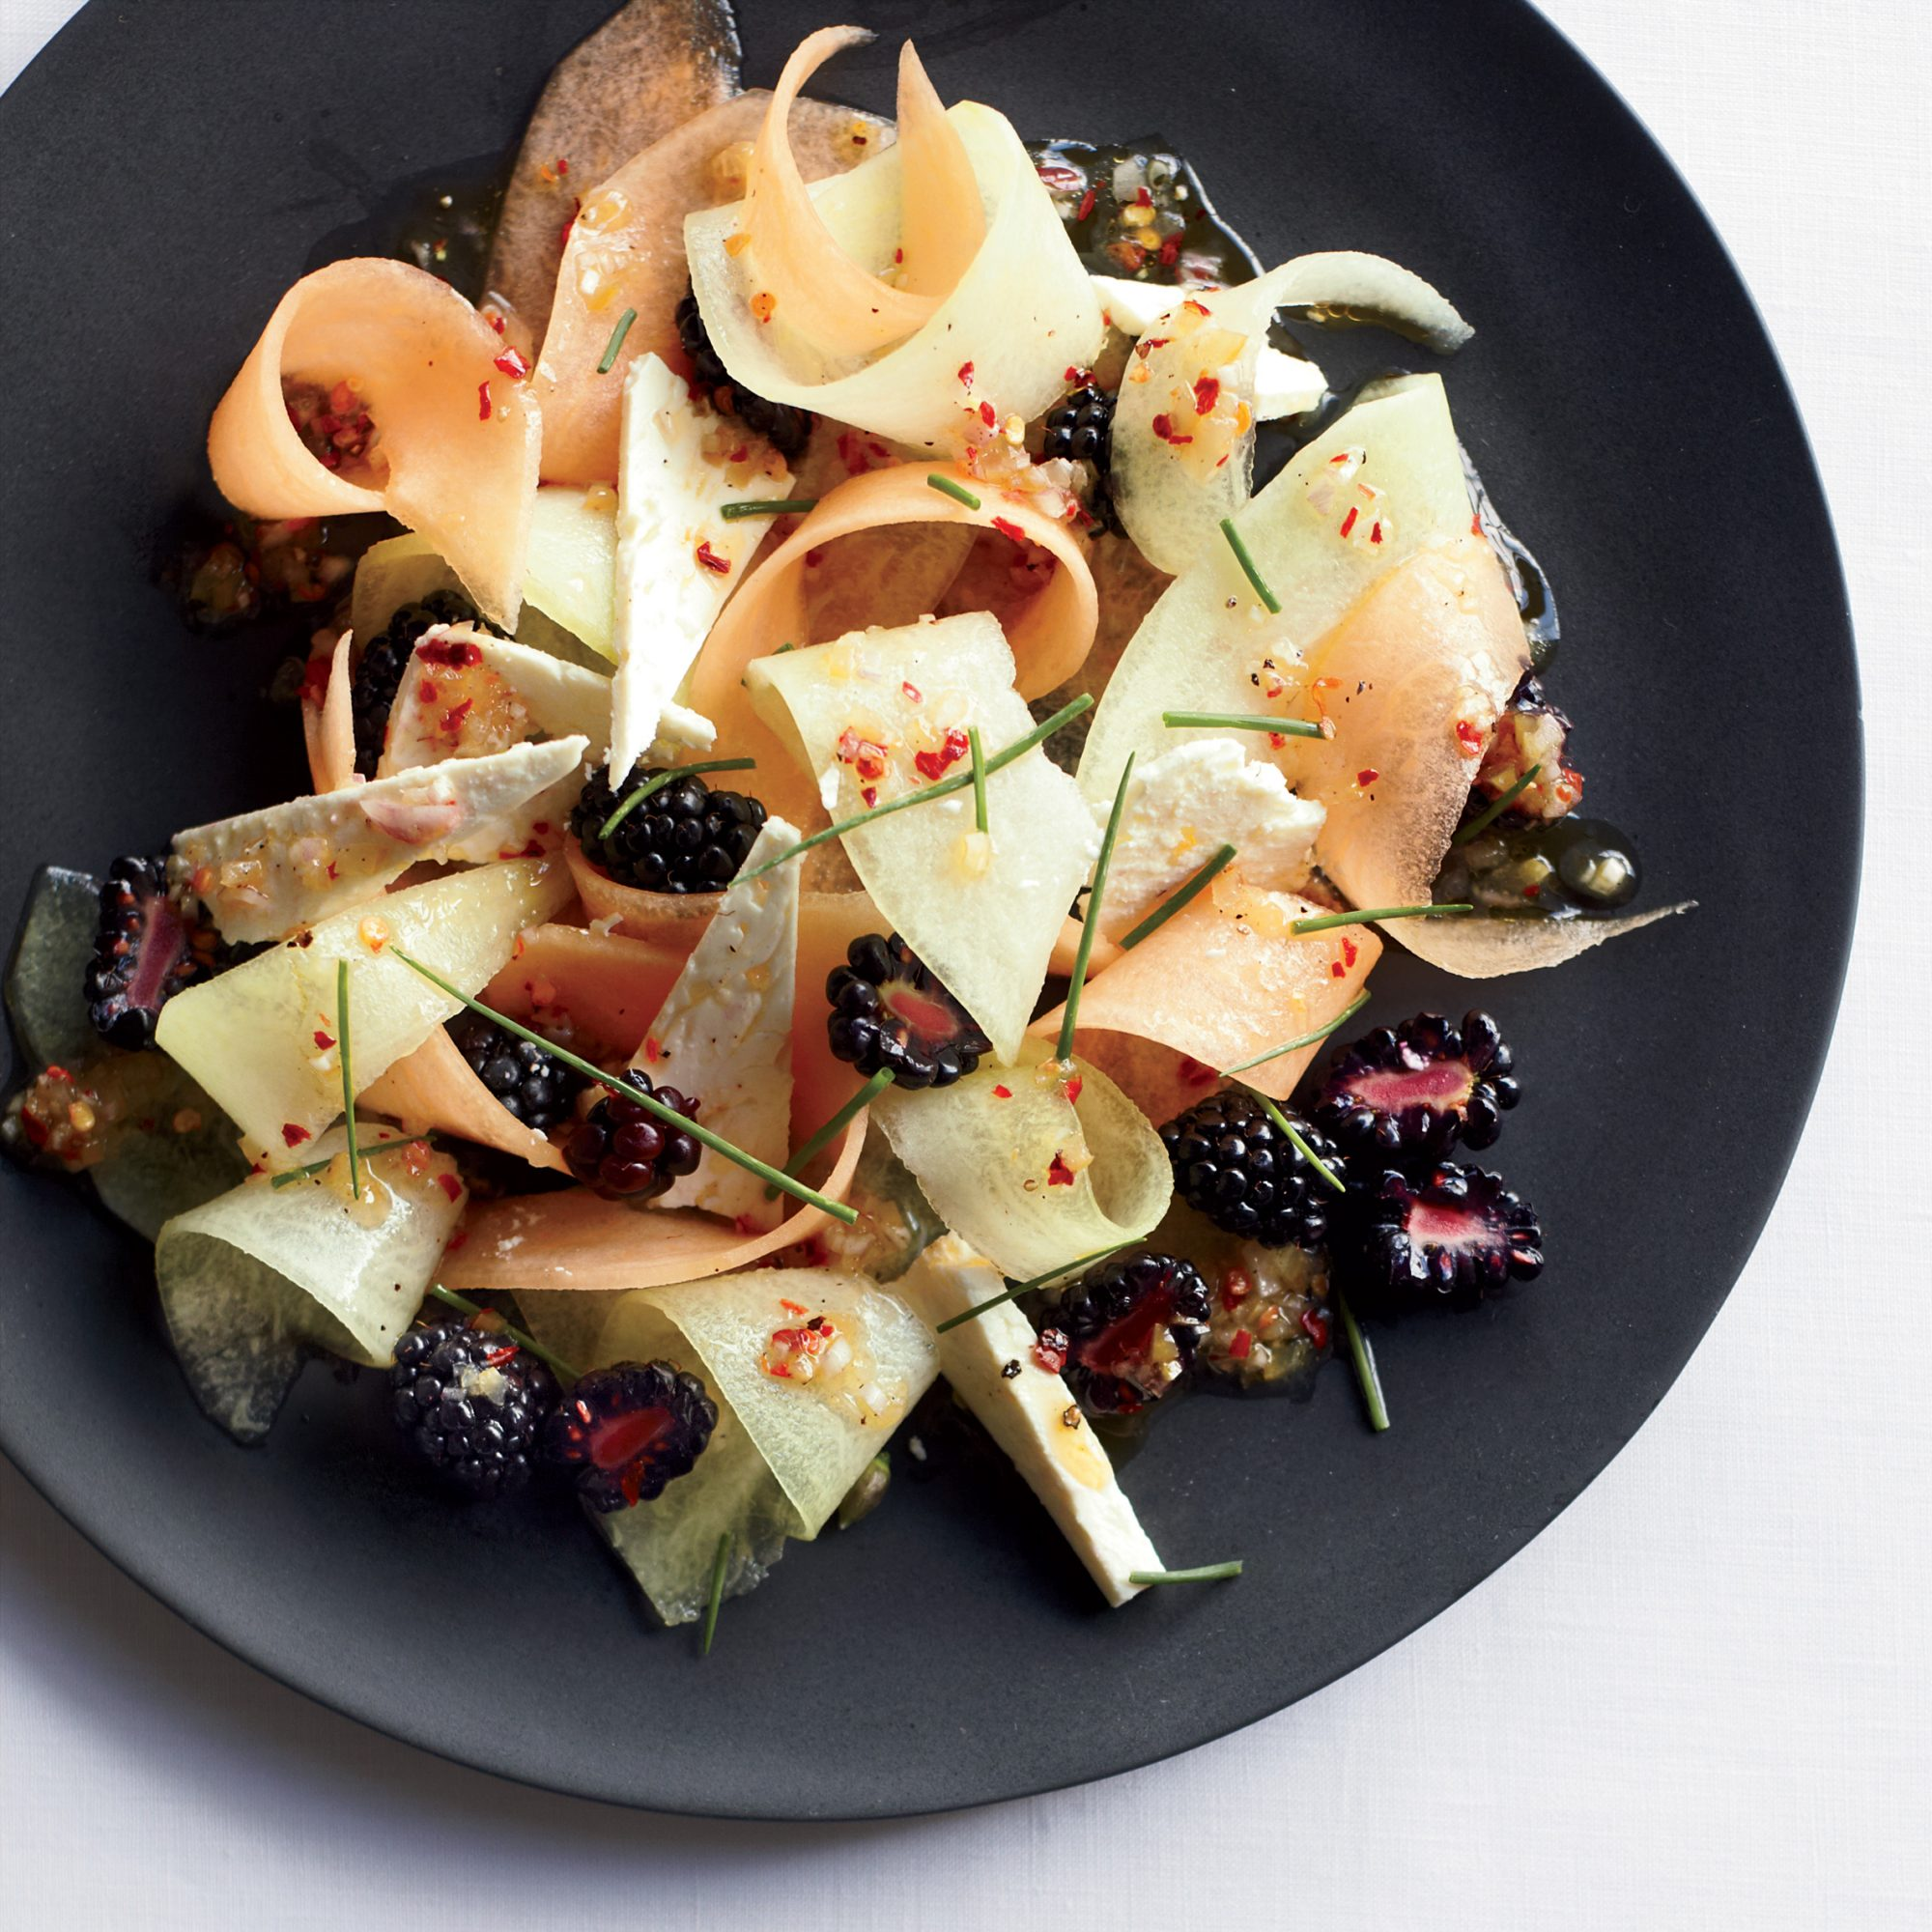 200x250-201207-r-melon-berry-and-feta-salad.jpg